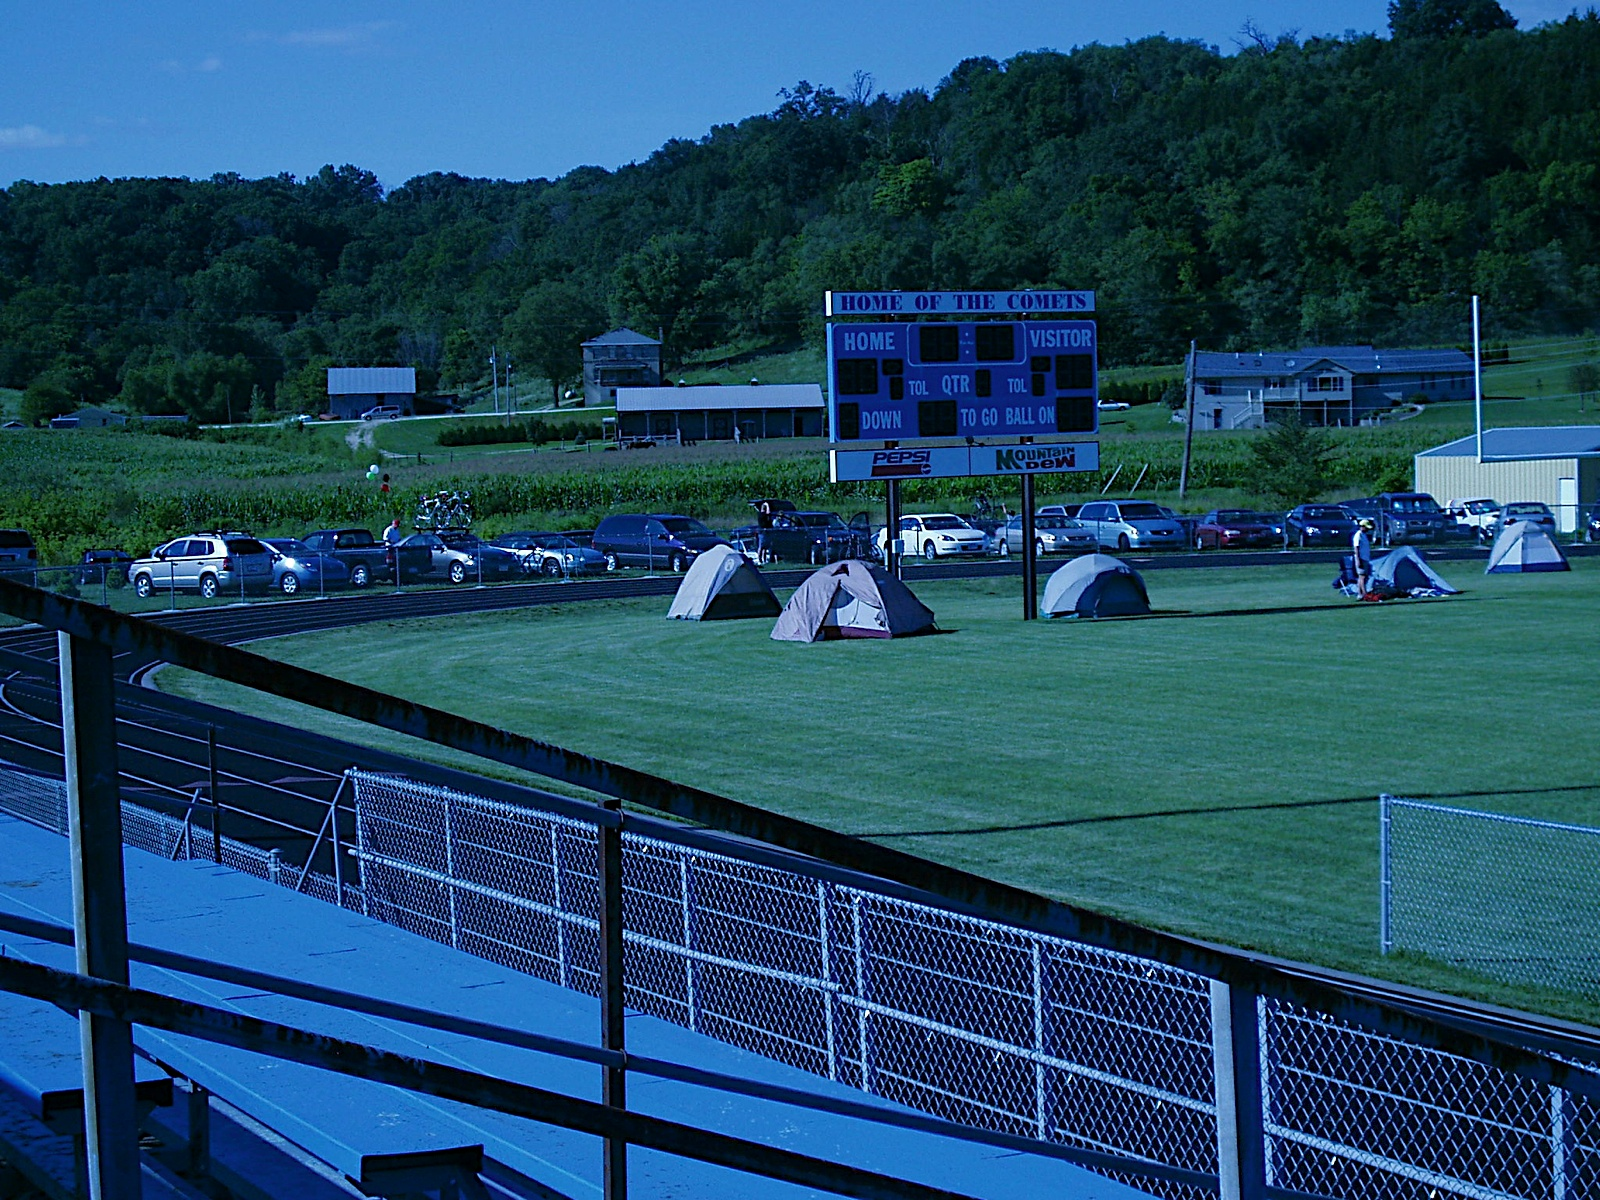 camping on the football field